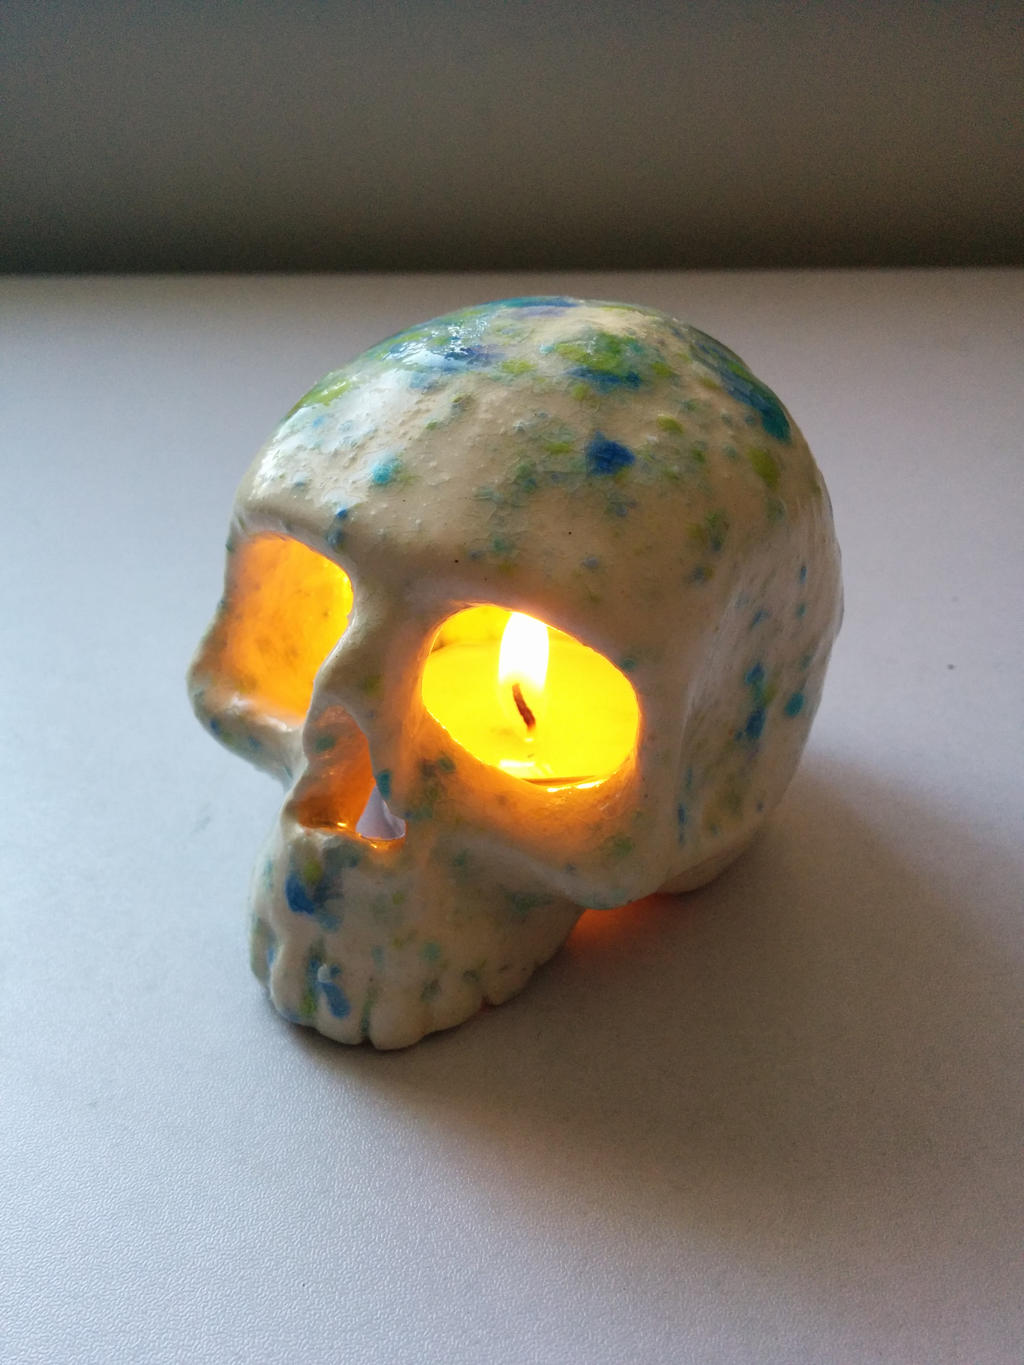 ceramic skull candle holder by alexism on deviantart - ceramic skull candle holder by alexism ceramic skull candle holder byalexism